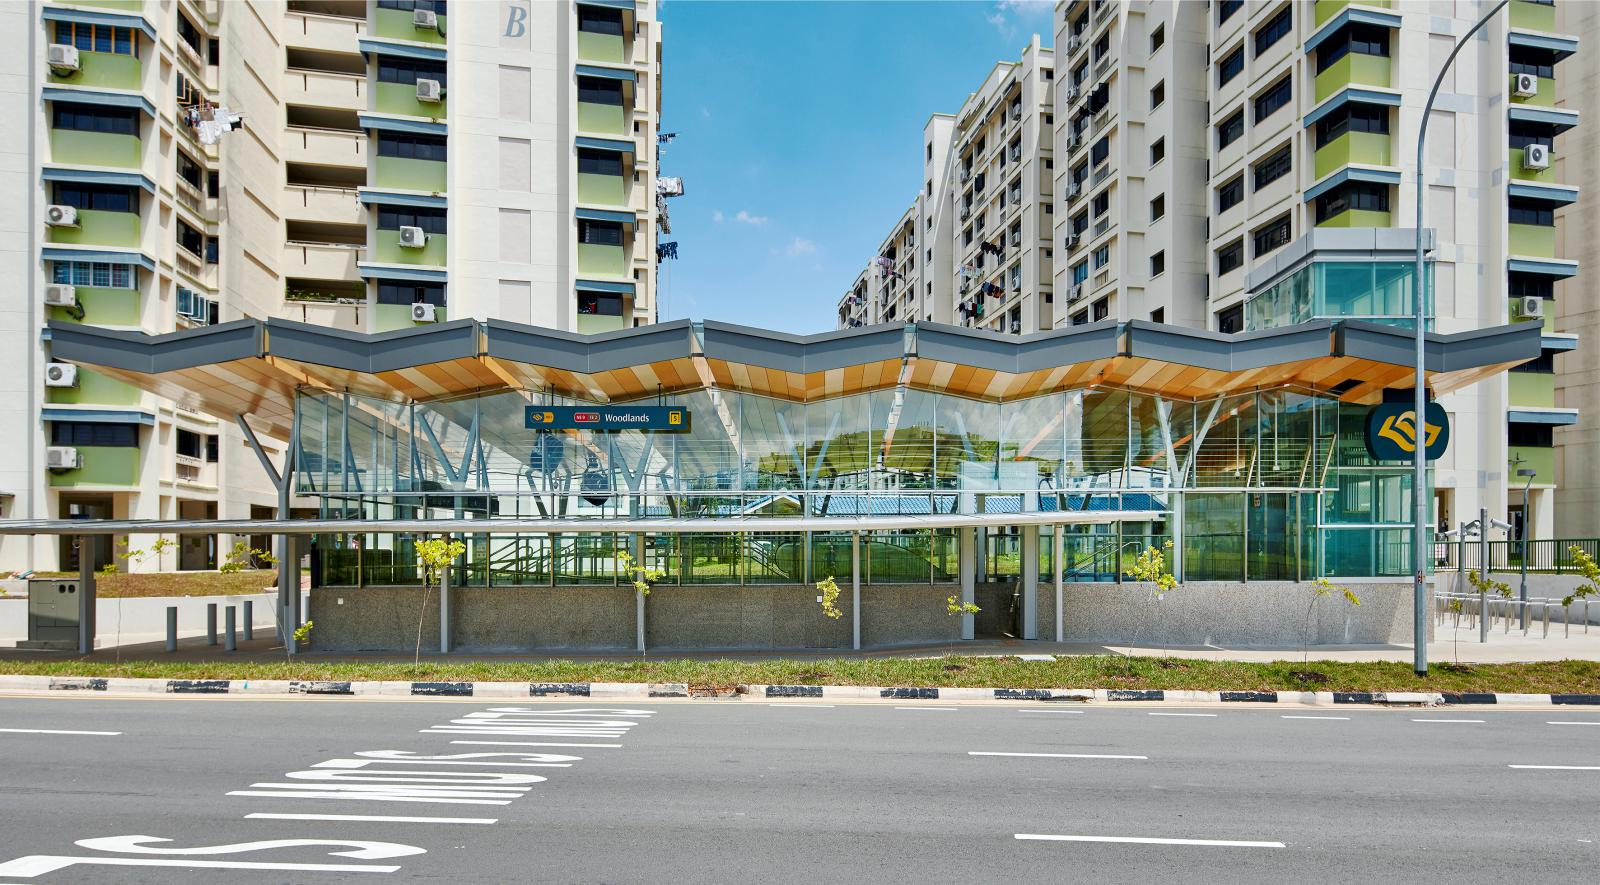 Woodlands Station